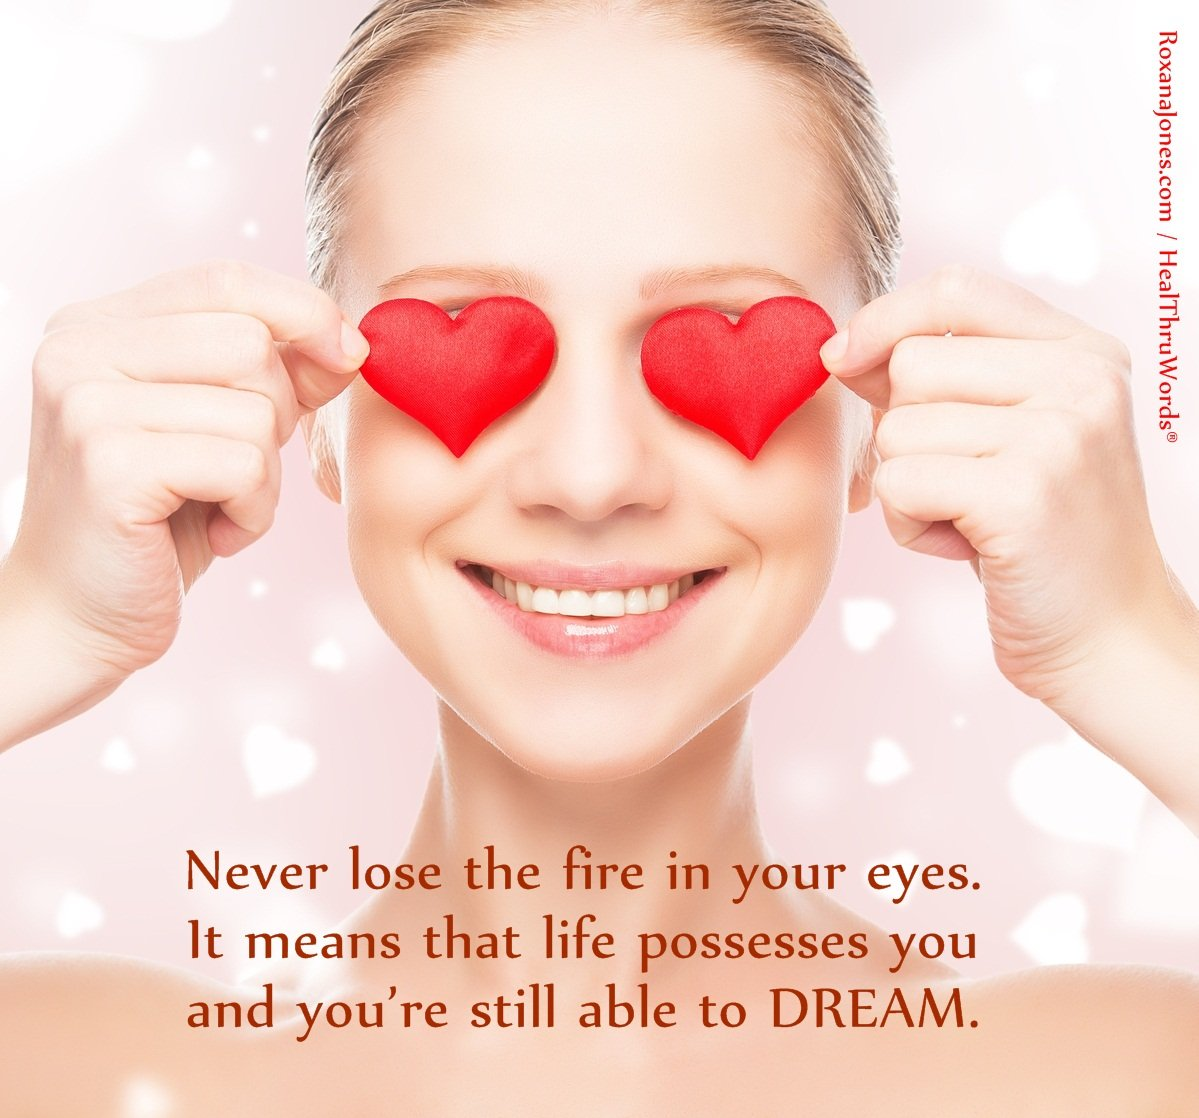 Inspirational Image: The Fire in your Eyes